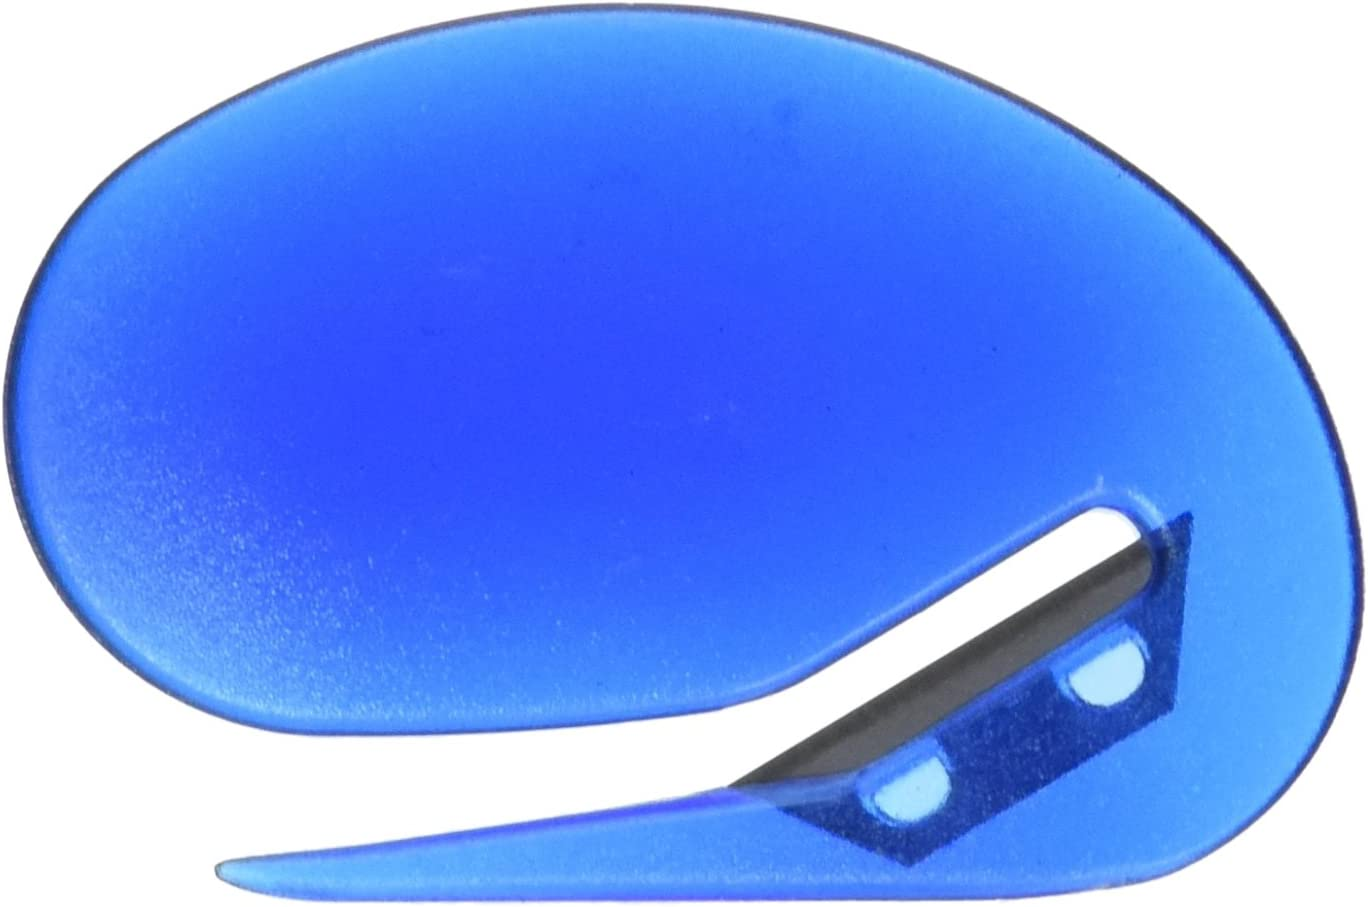 Officemate OIC Deluxe Plastic Letter Opener, Blue (30310)